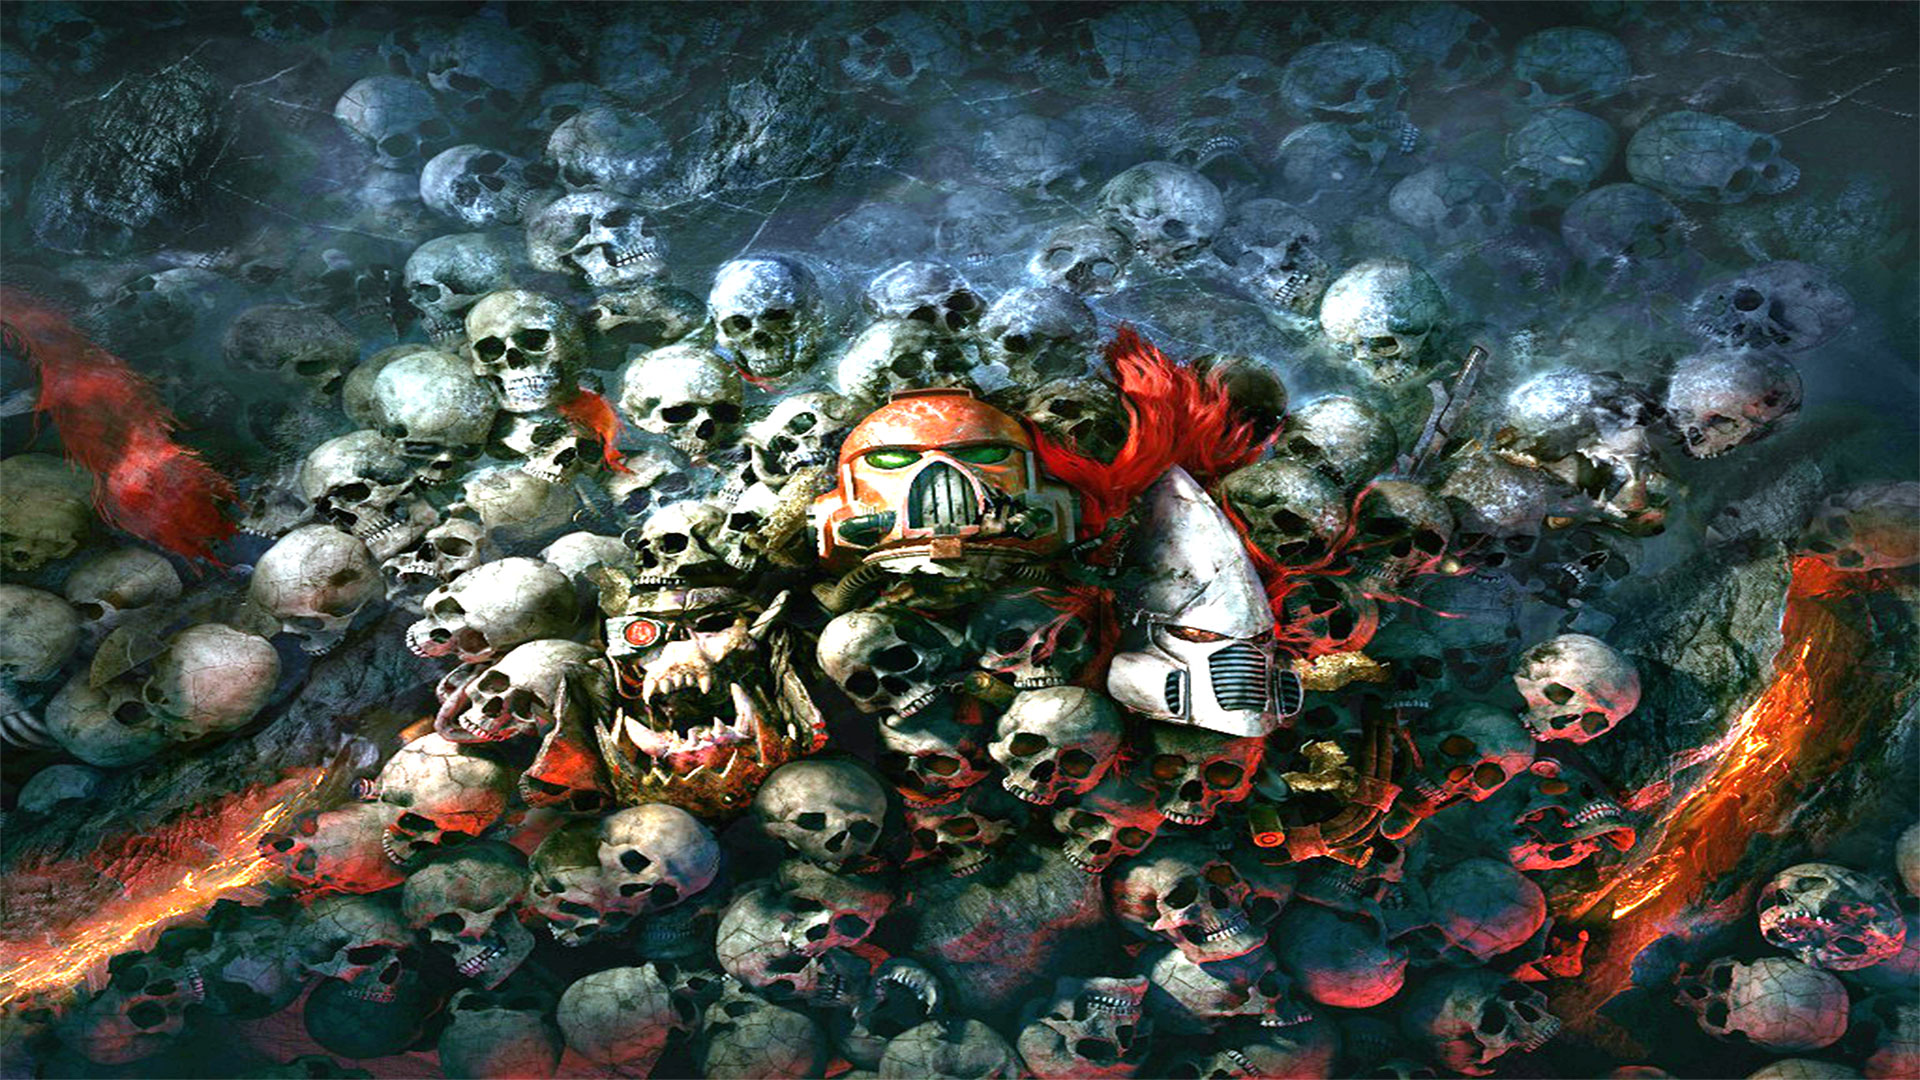 Warhammer 40k hd wallpapers